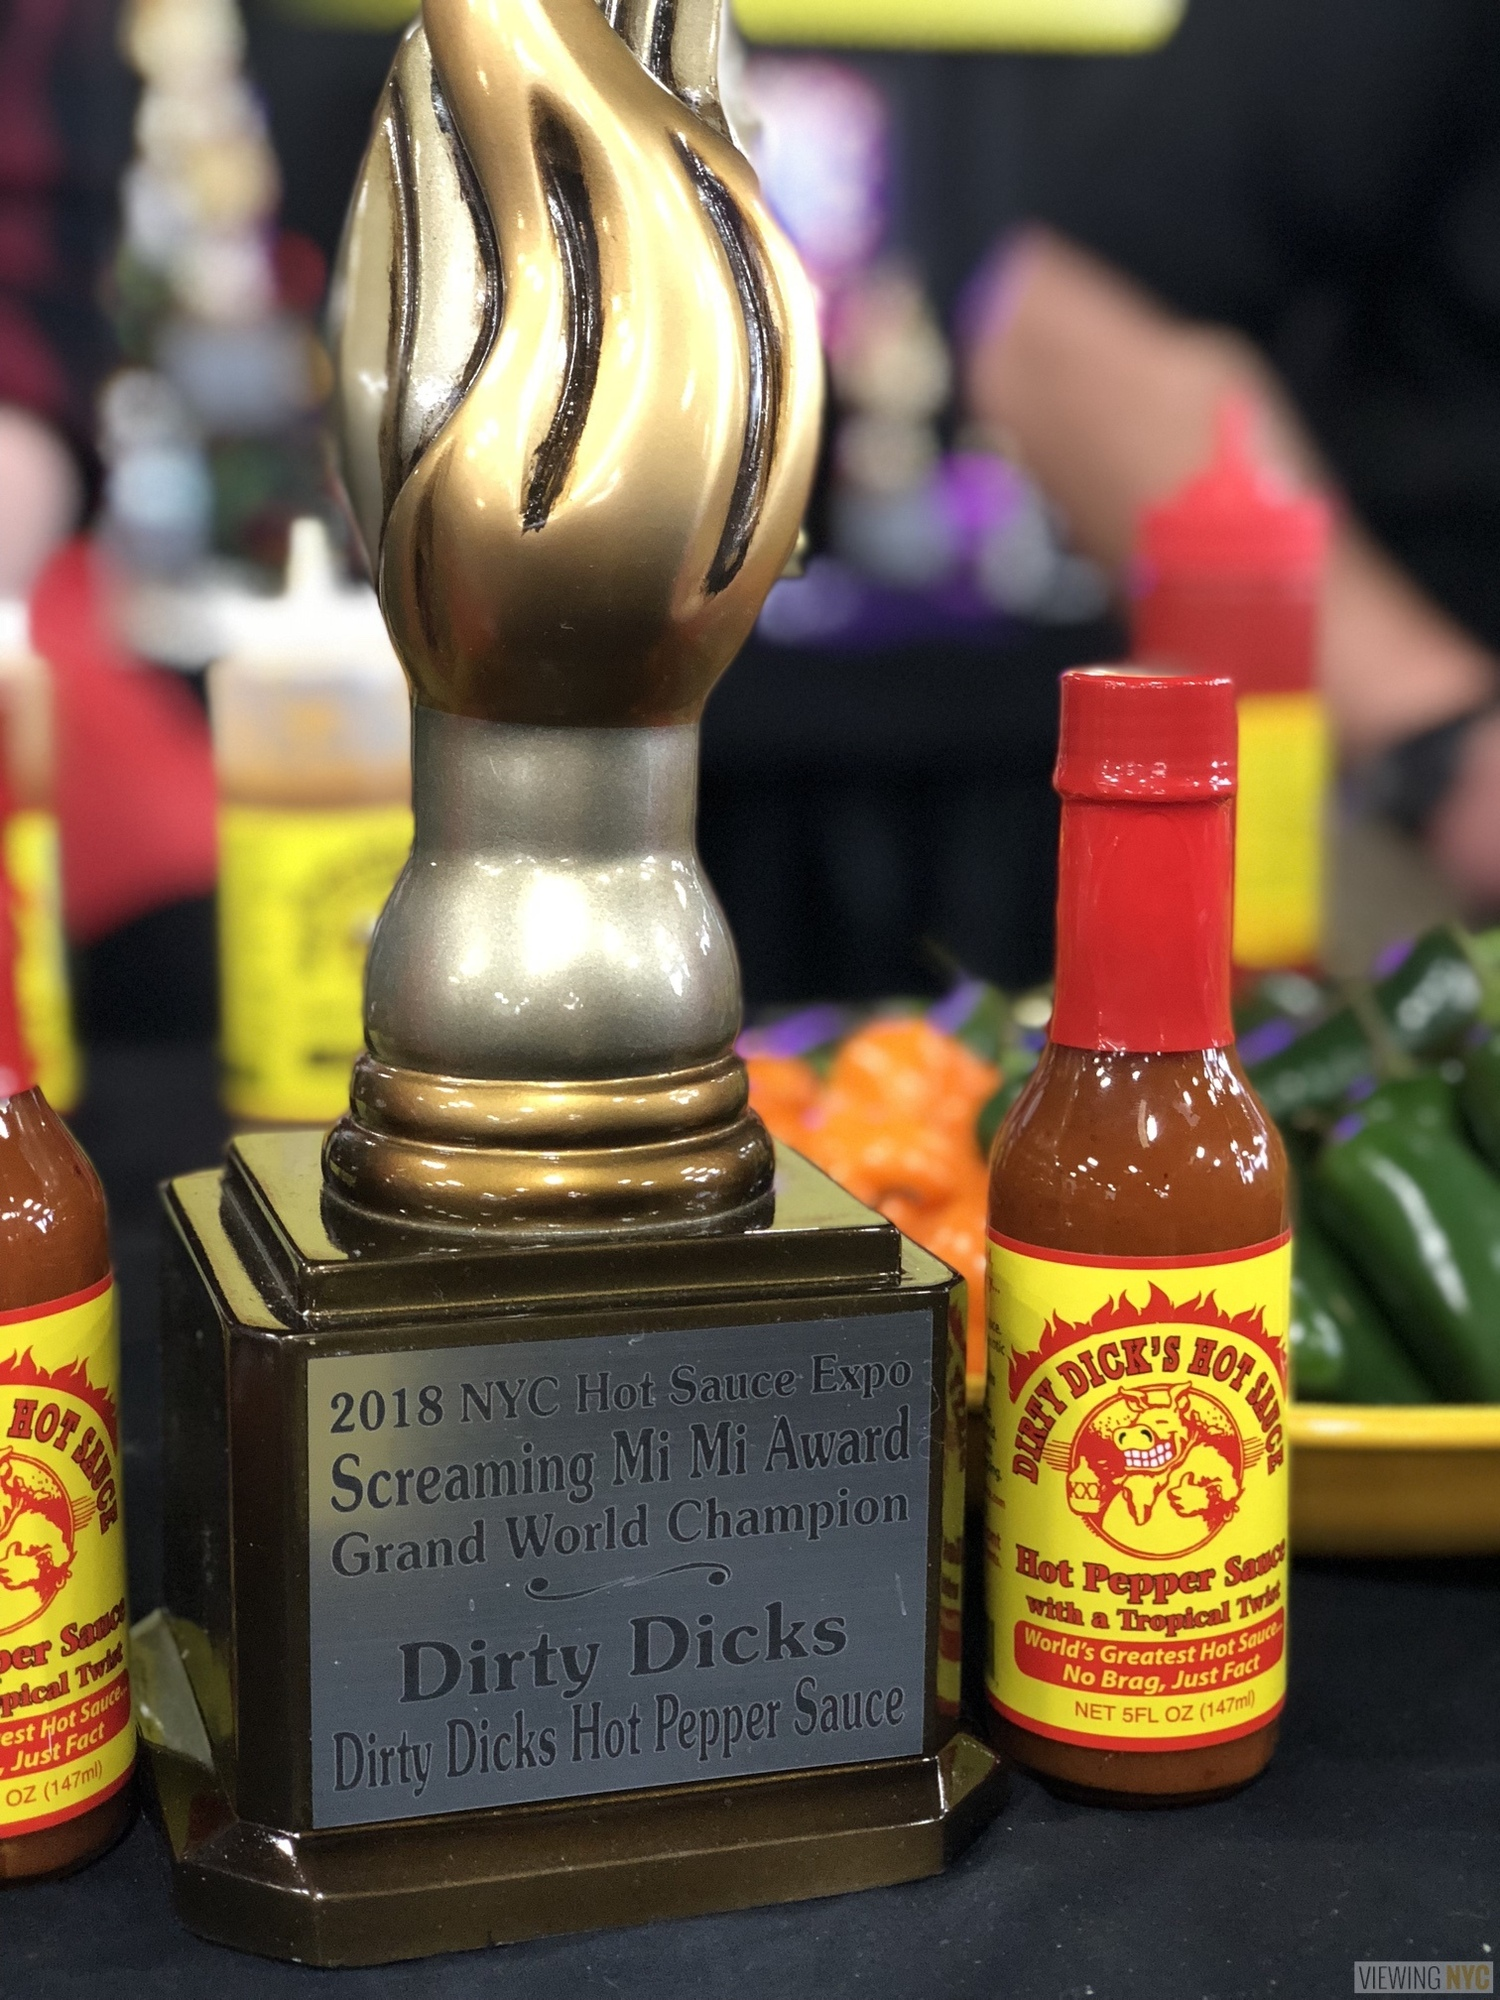 Dirty Dick's Hot Pepper Sauce | 2018 New York City Hot Sauce Expo